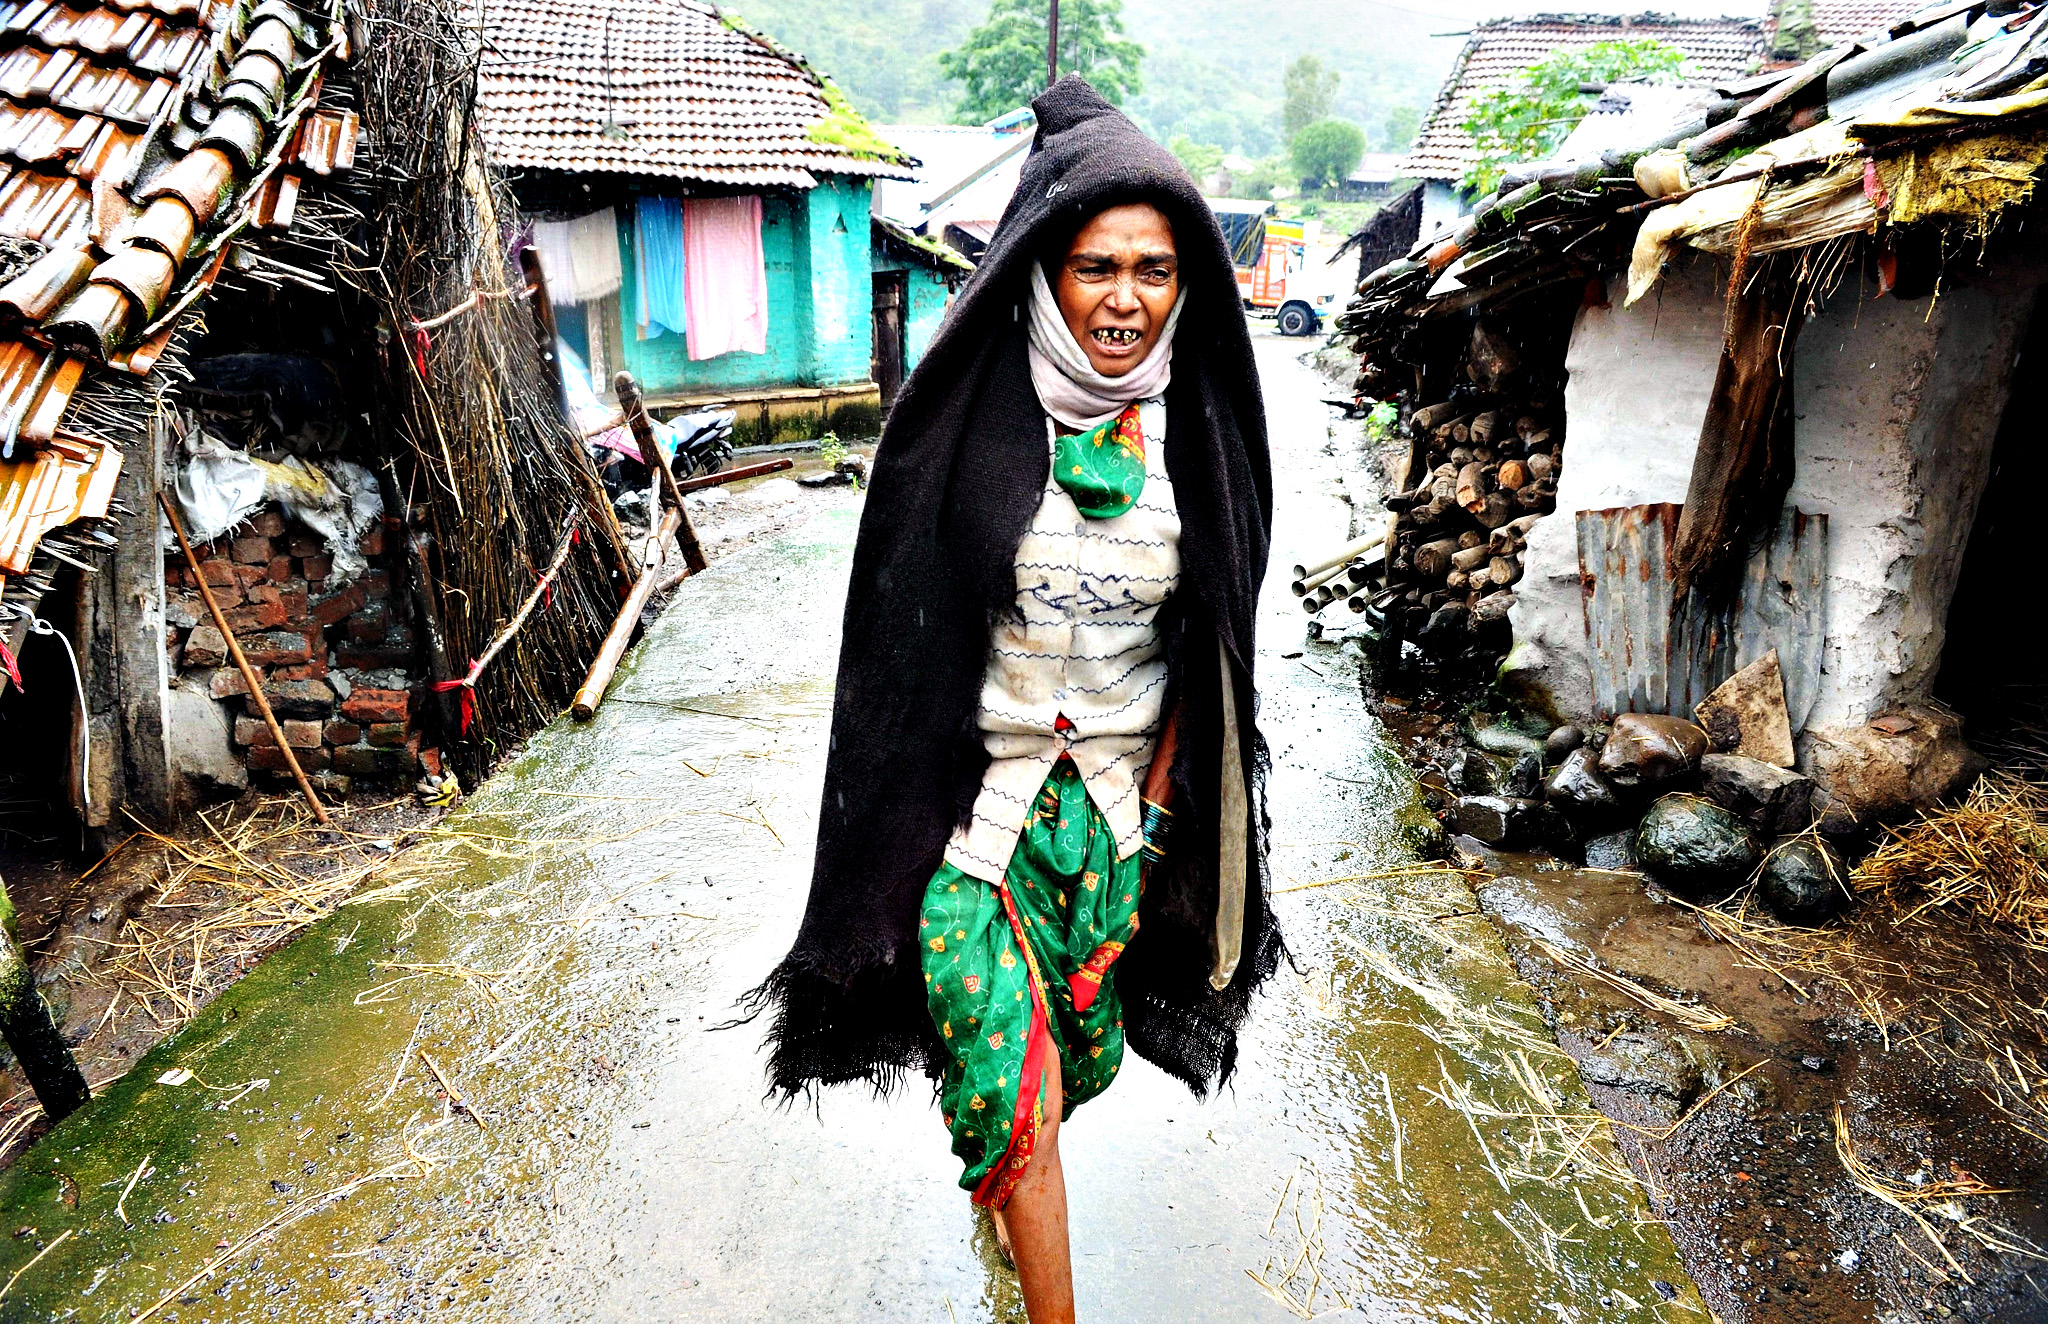 A Indian villager walks near the scene following a landslide at Malin village in Pune district of India's western Indian state of Maharashtra on July 31, 2014. Rescuers battled through heavy rains in a desperate search for victims of a landslide in western India that buried dozens of homes, with fears the death toll could reach 150.